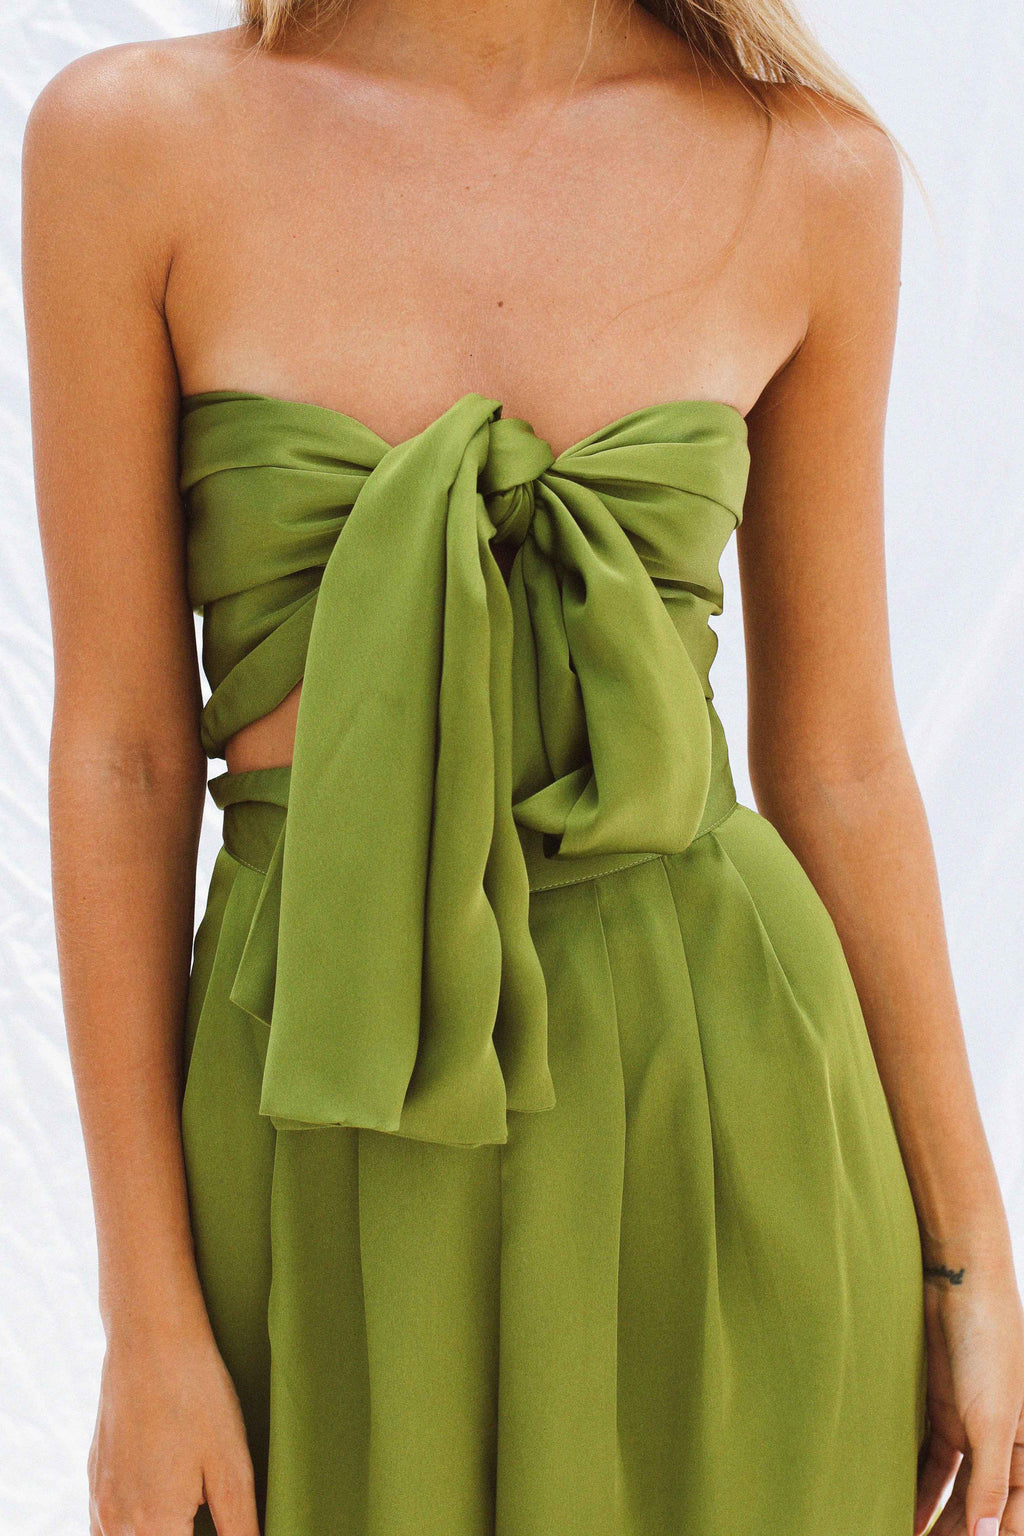 THEOLA SET IN GREEN | Women's Online Shopping | CHICLEFRIQUE  (2118770425945)